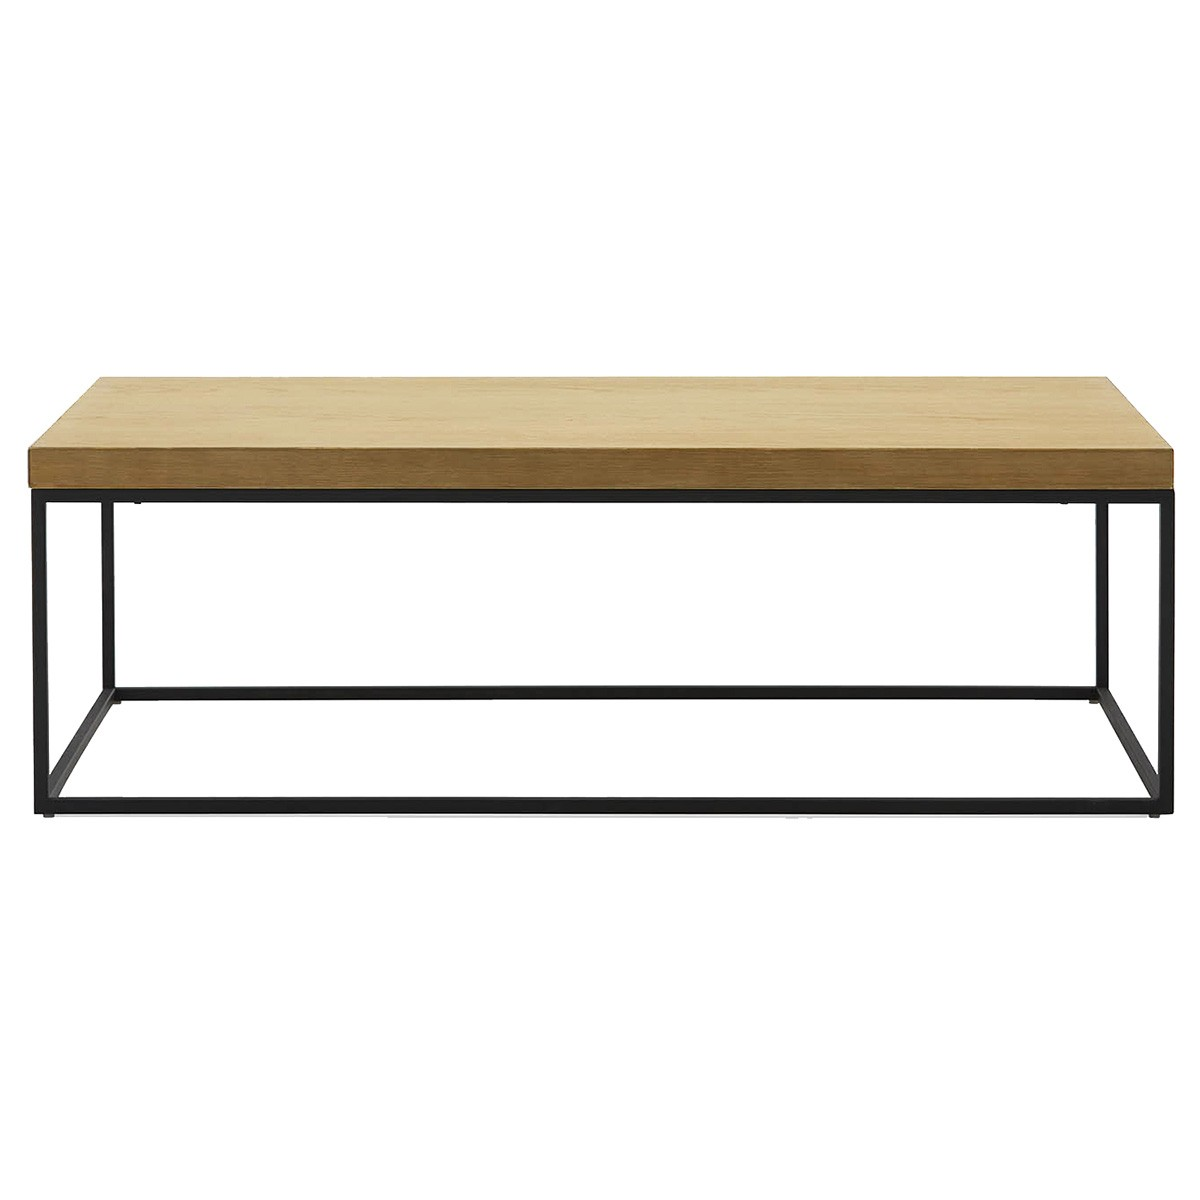 Bexy Wooden Top Metal Coffee Table, 120cm